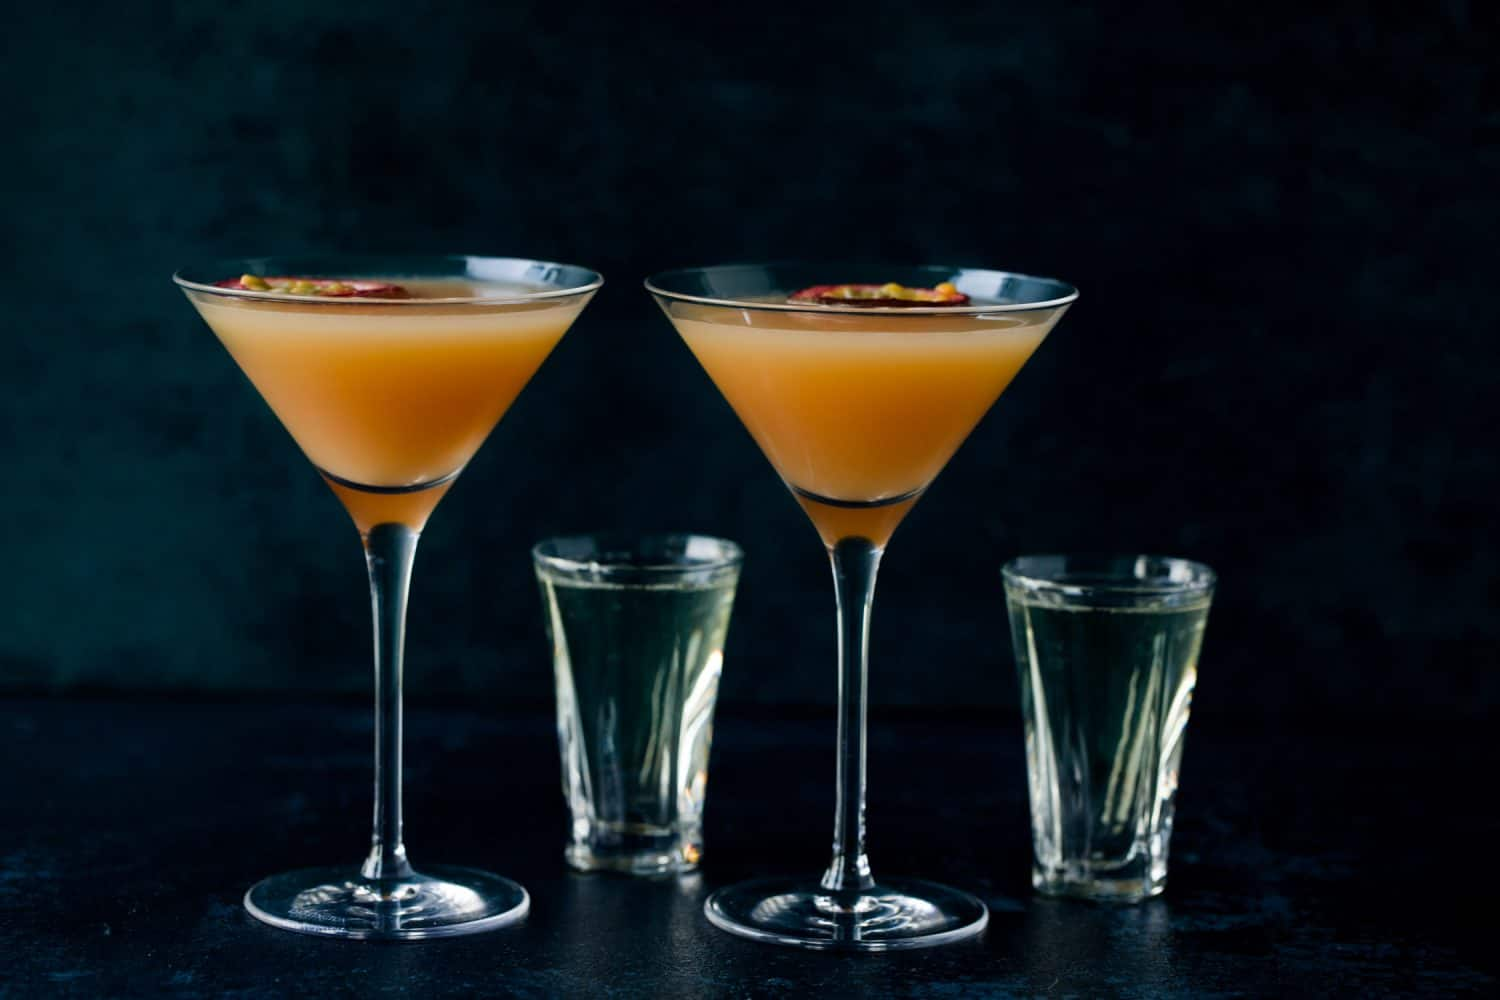 Two martini glasses filled with an orange coloured cocktail and two shot glasses filled with prosecco.